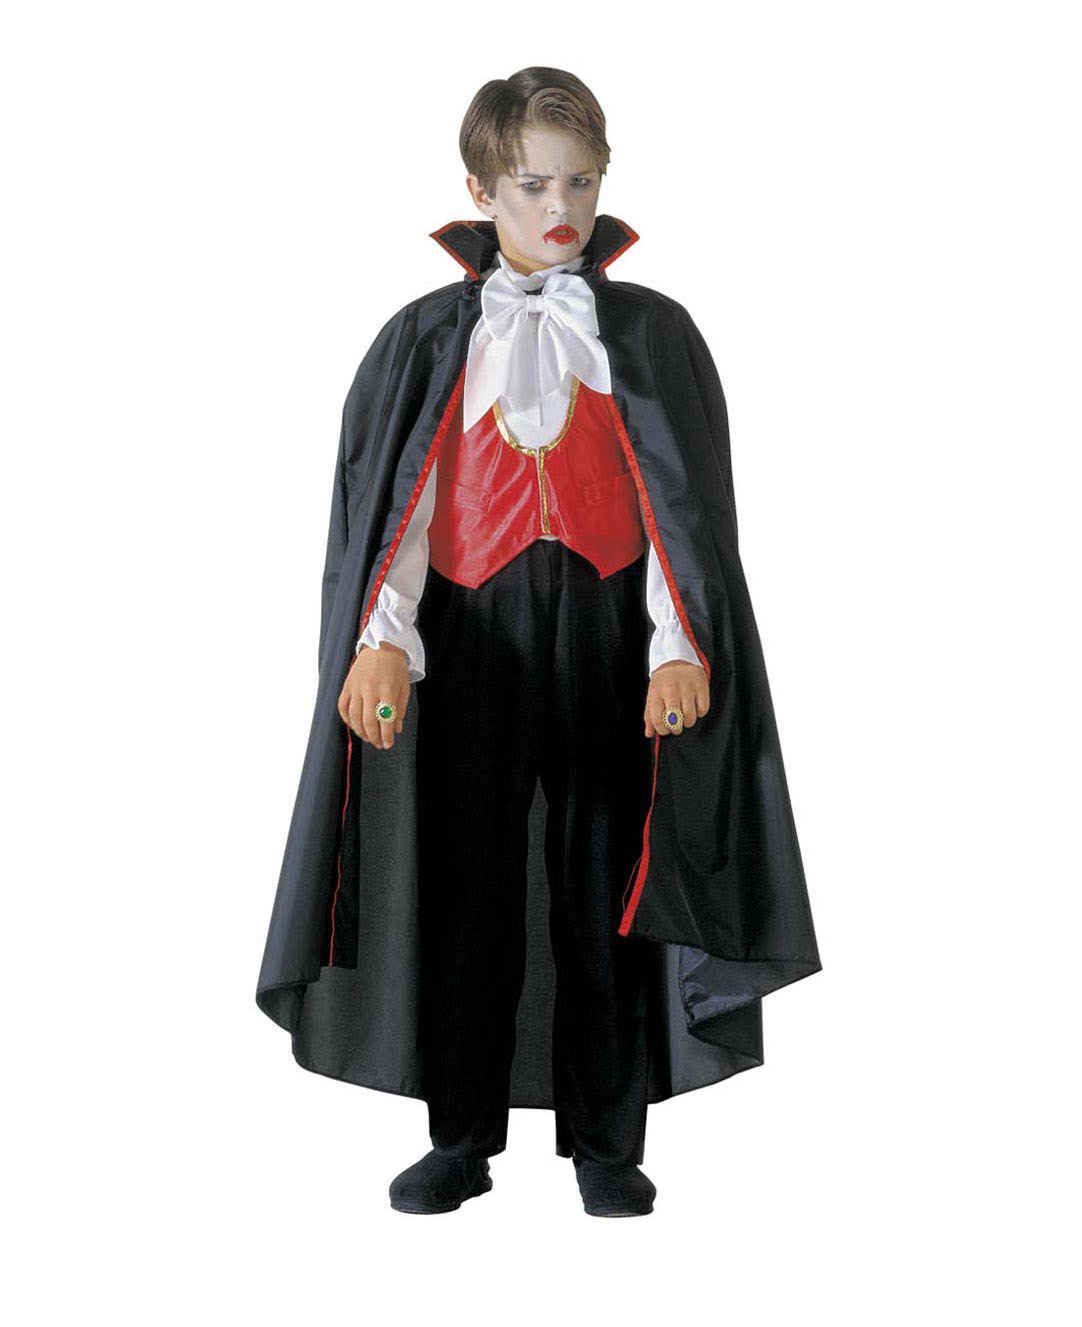 When it comes to Halloween costumes, there is no better option than vampire costumes. Plus, each adult and kid's vampire costume comes at a great price.